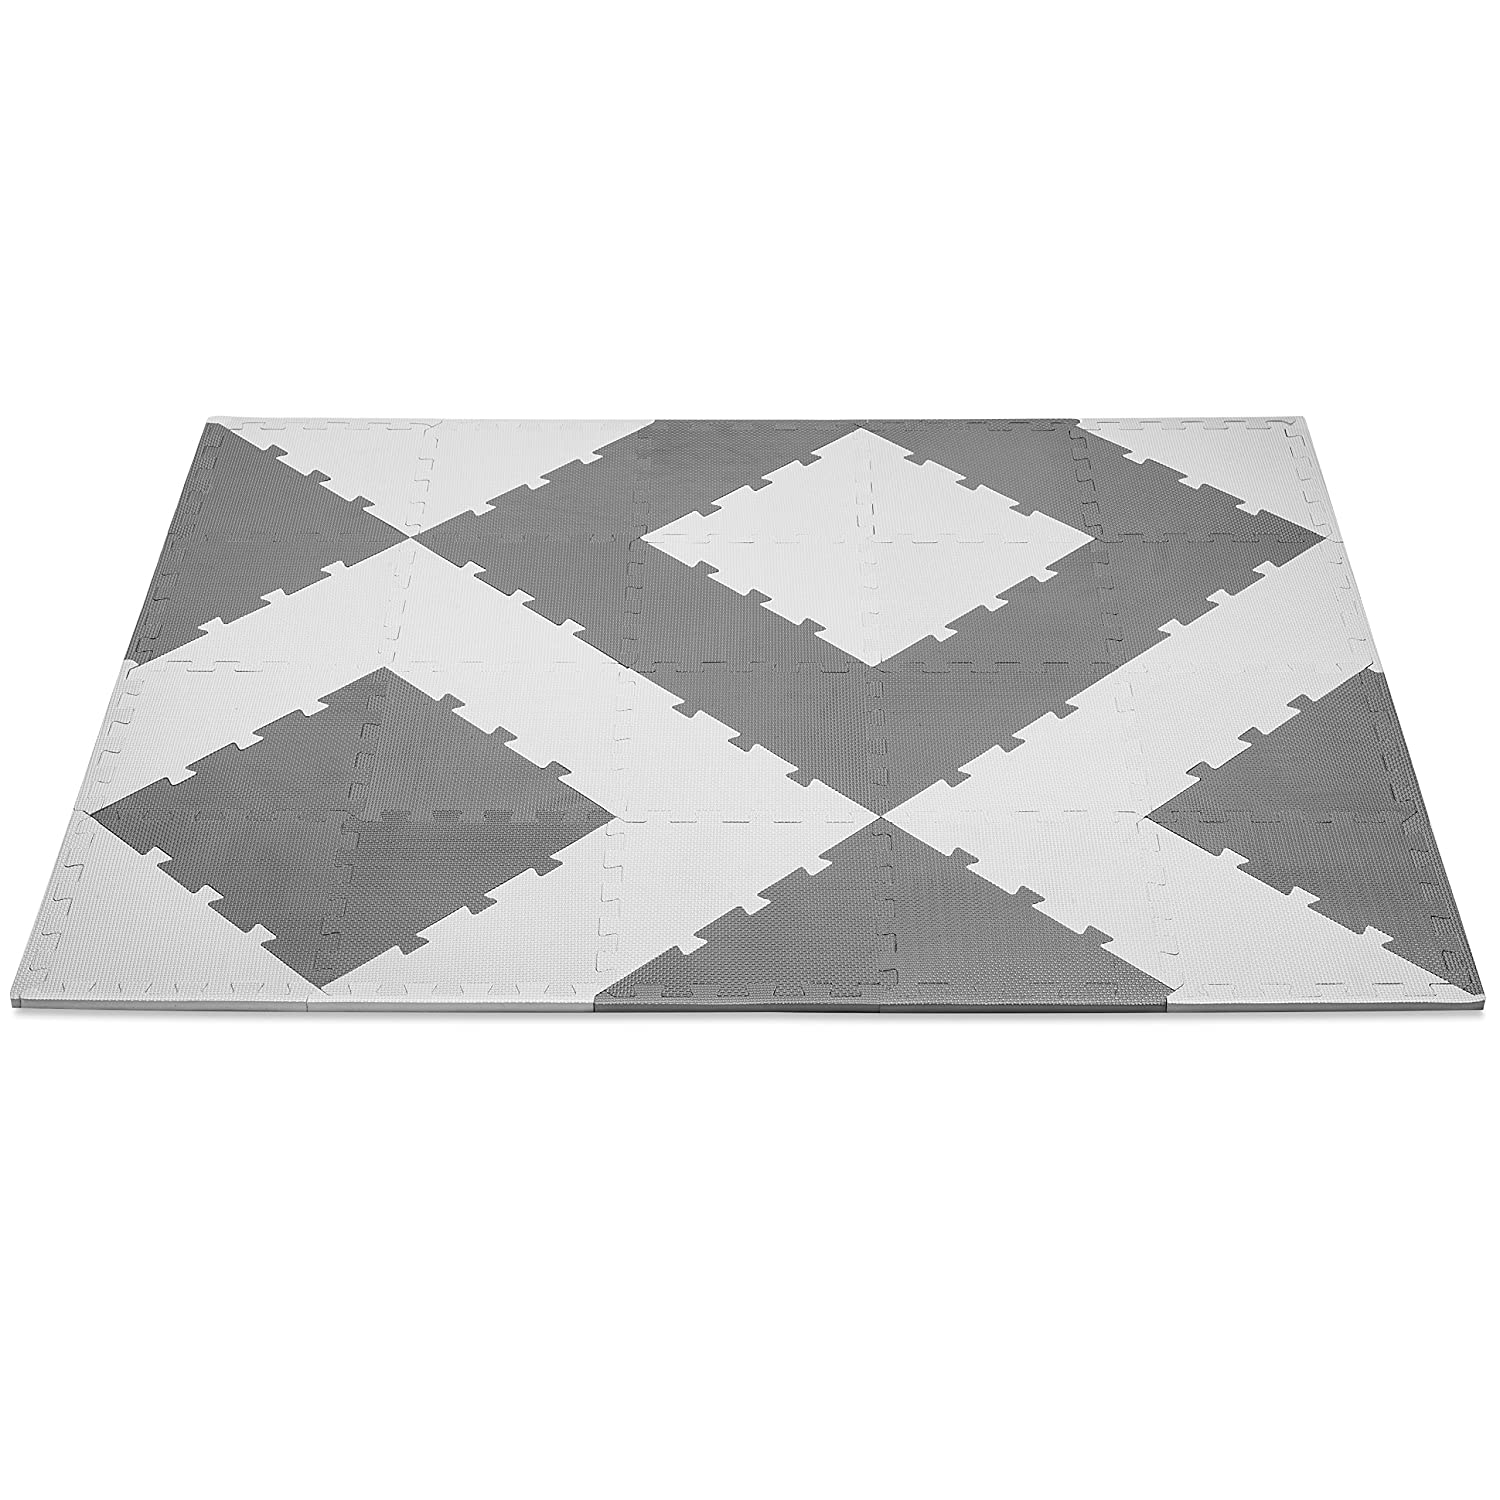 Non-Toxic Premium Quality Foam Play Mat. Non-Slip, AntiBacterial, Easy To Clean. Thick, Soft, Comfortable & Customizable Grey Neutral Colors. Great For Baby/Toddler Safety + Exercise 4FTx6FT | 24 SqFt Hathor Homes